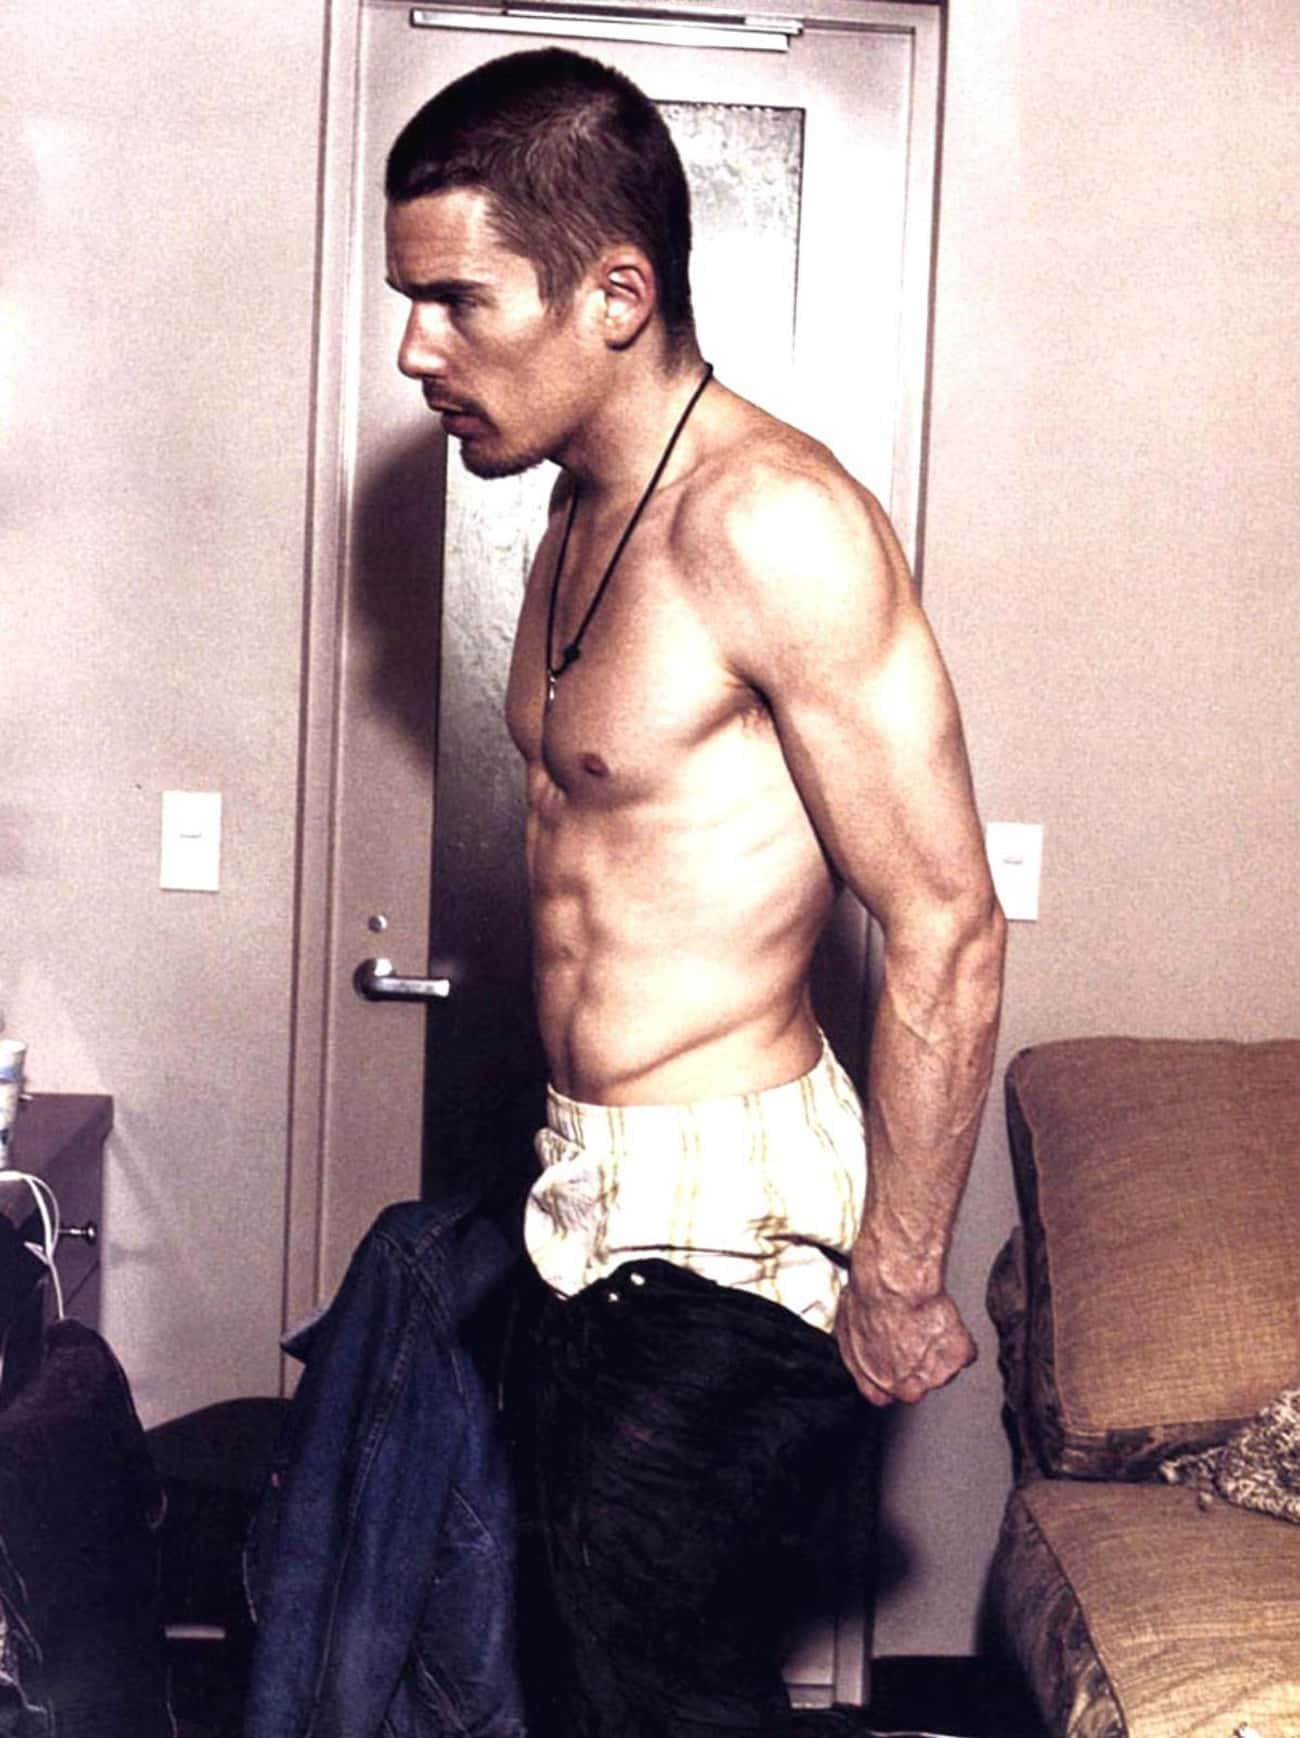 Ethan Hawke in Shirtless with Black Jeans